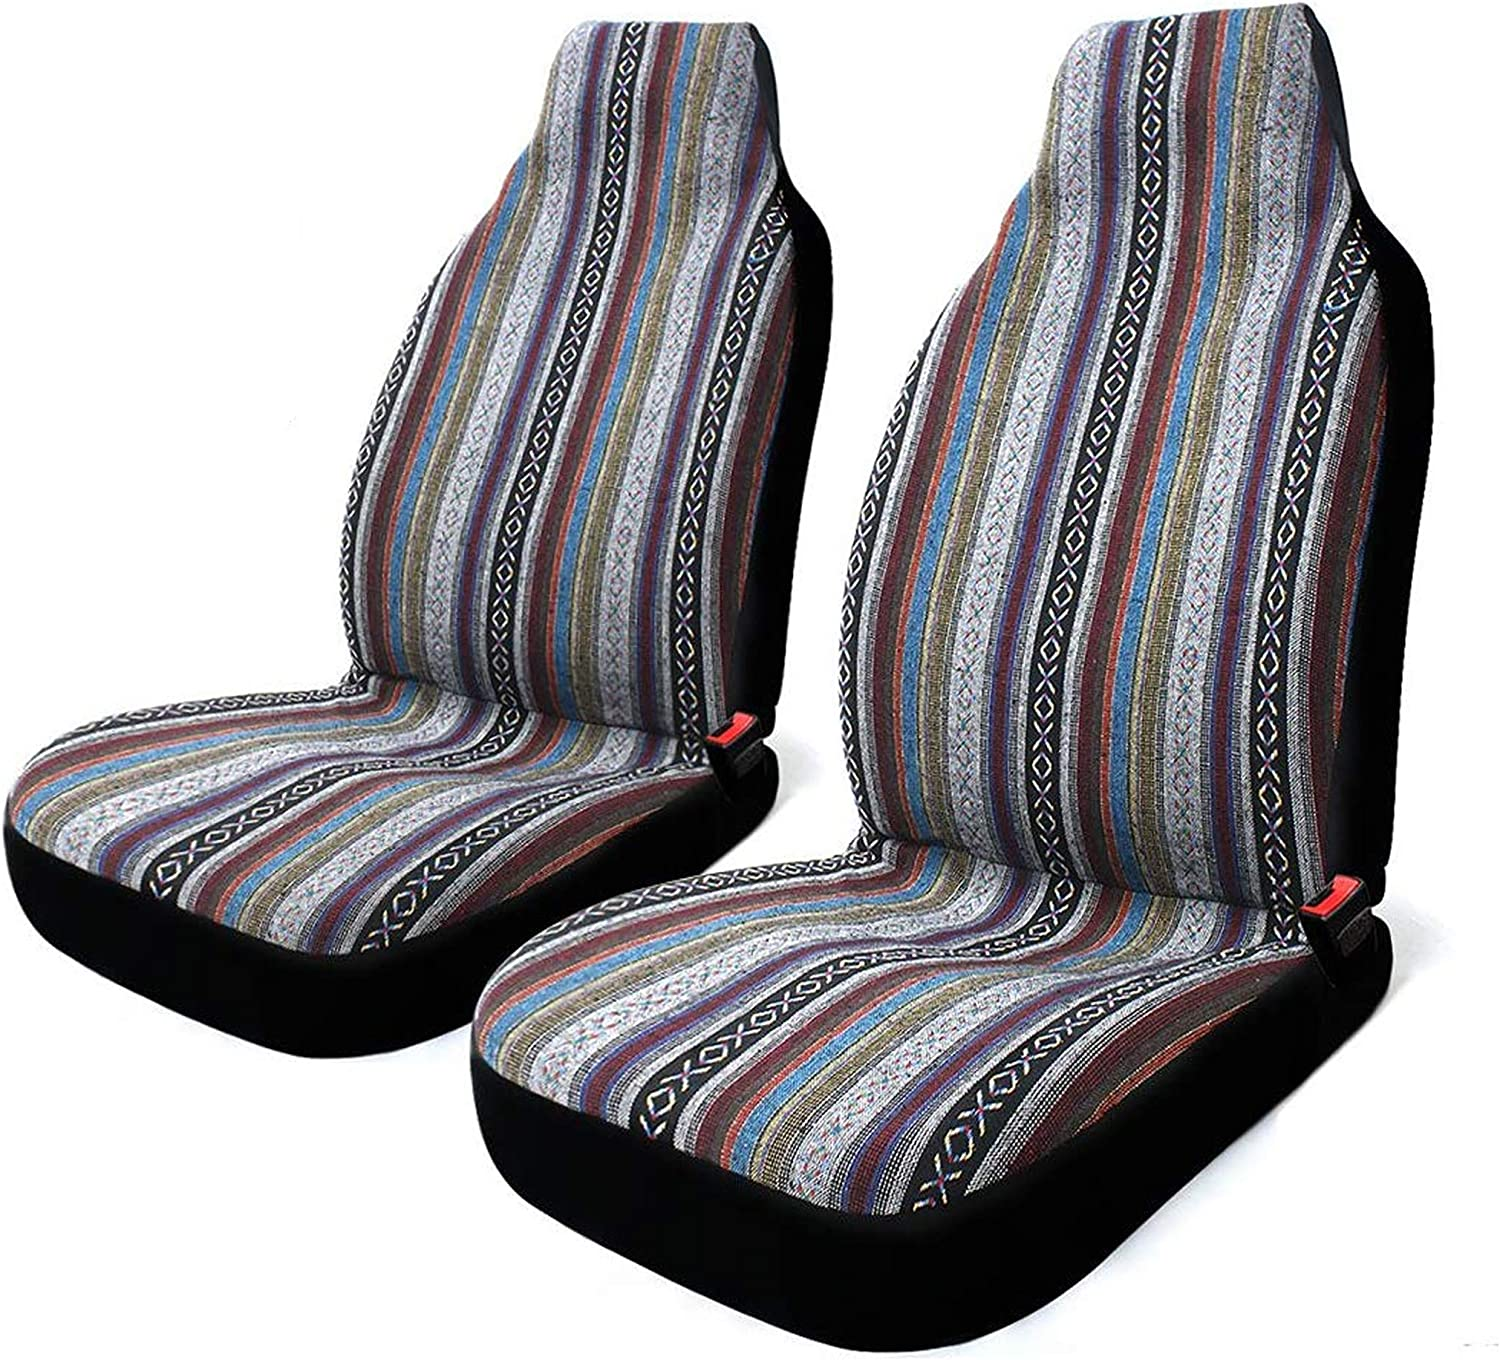 2 Pc Universal Baja Inca Saddle 1 Award-winning store year warranty Mexican Blanket Front Cover Seat